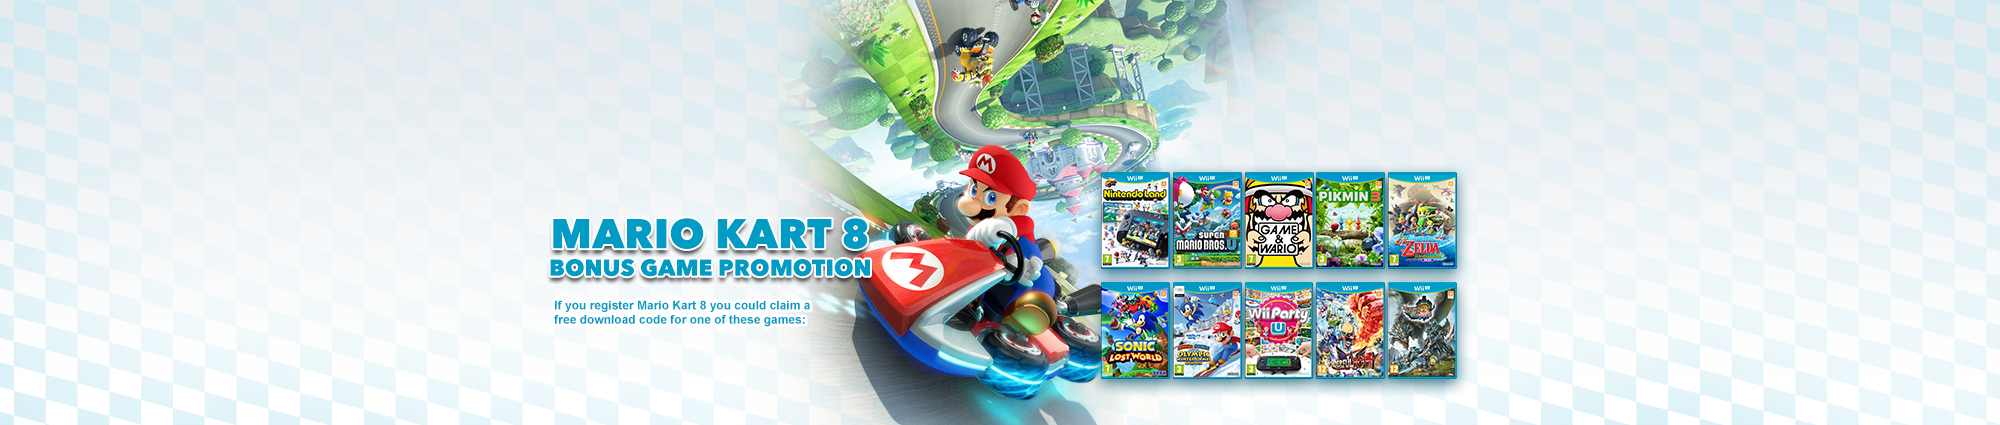 https://cdn02.nintendo-europe.com/media/images/02_top_banners/other_2/campaigns/mario_kart_8_bonus_game_promotion/TB_Generic_MarioKart8Promo_enGB.png